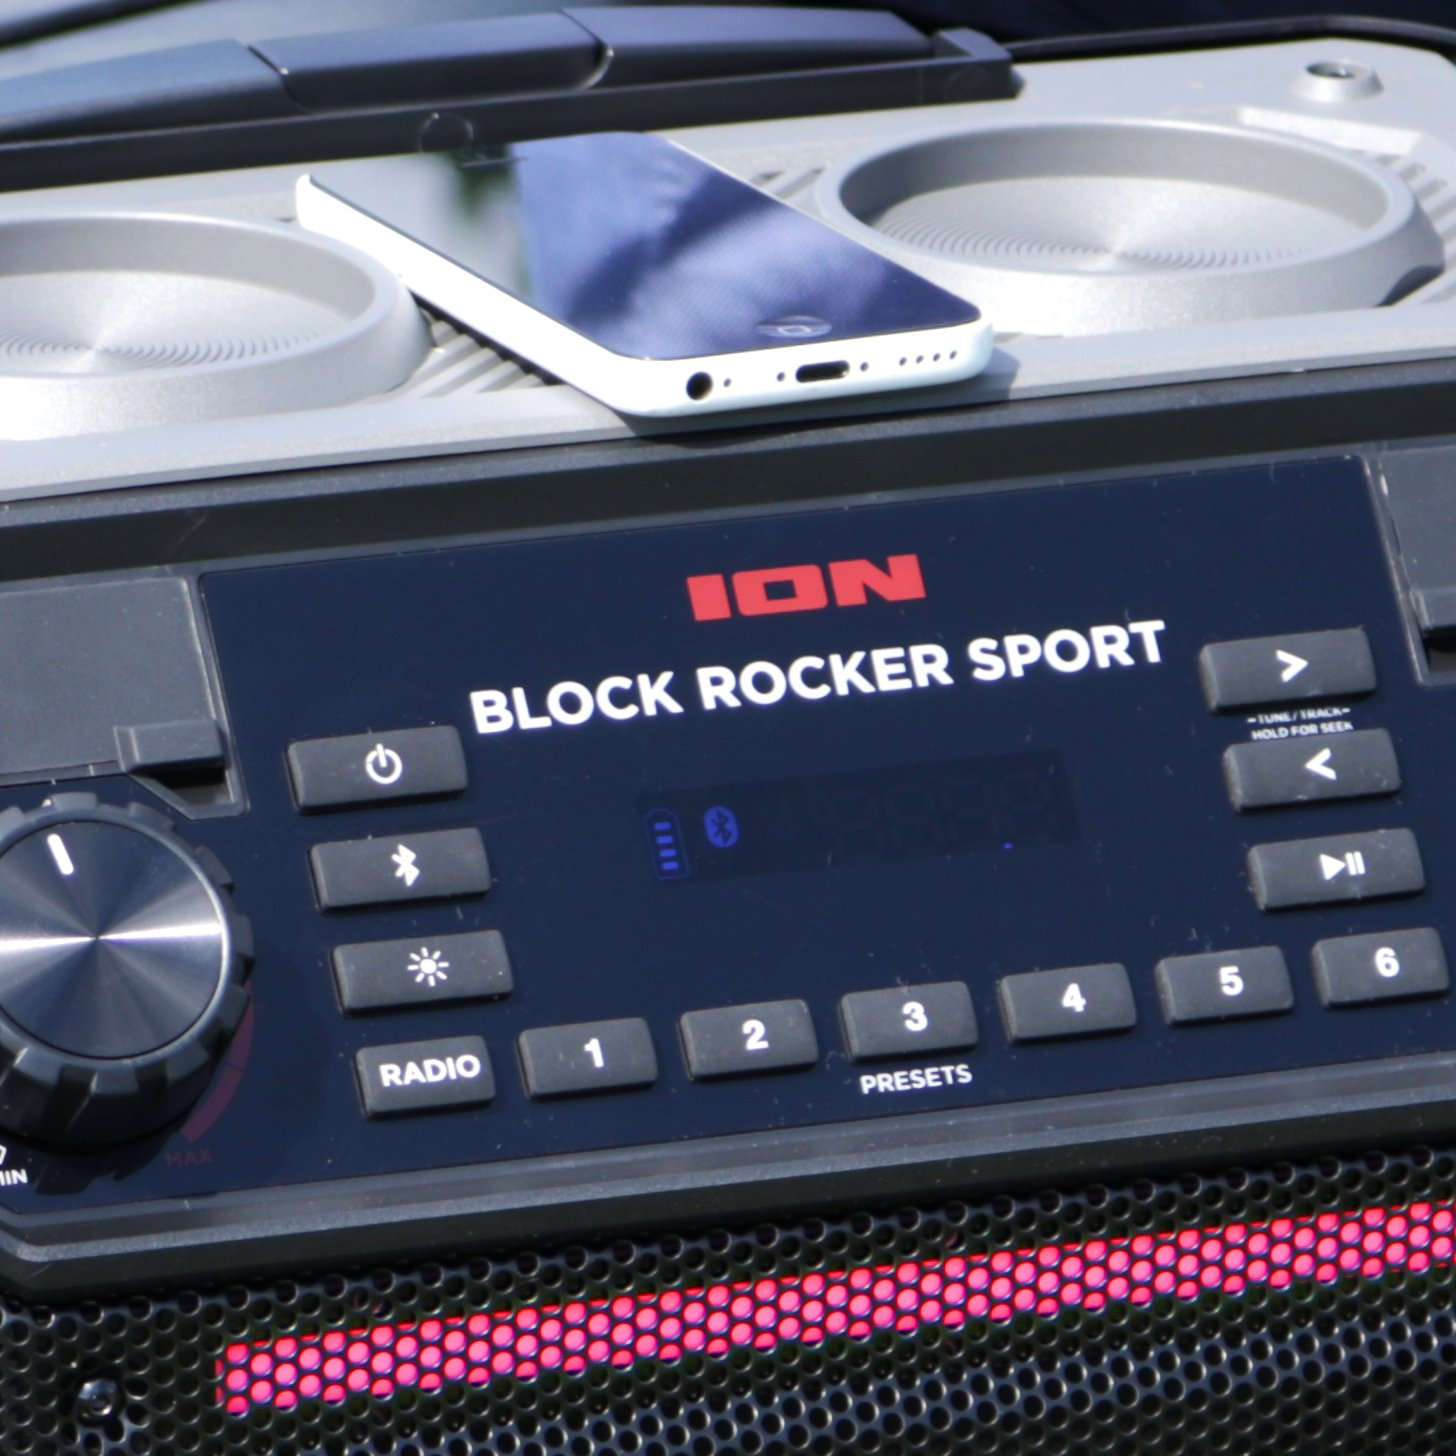 ION Audio Block Rocker Sport - 100Watt Bluetooth Party Lautsprecher mit wiederaufladbarem Akku, Mikrofon, Radio, LED…